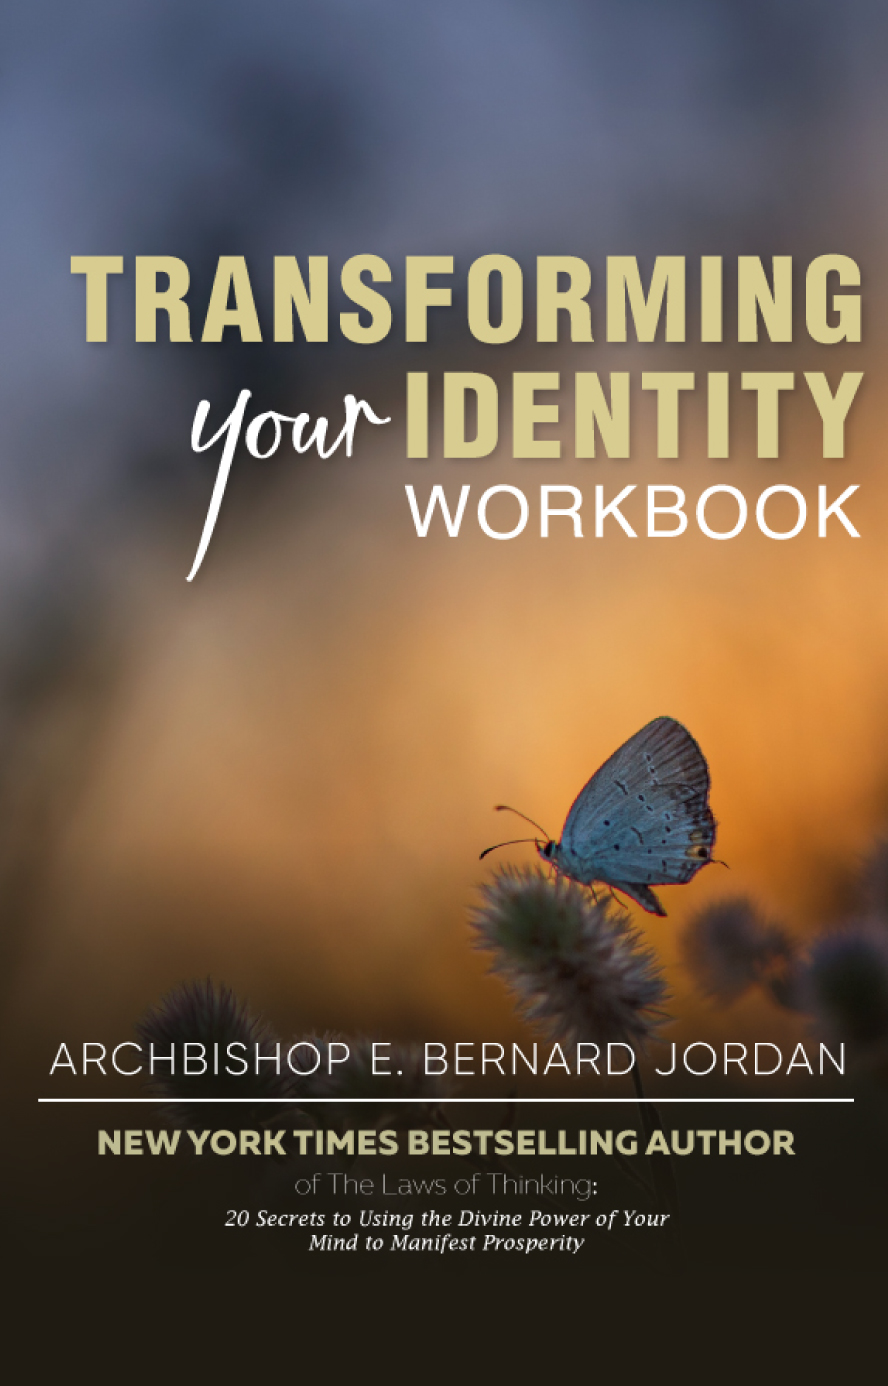 Transforming Your Identity